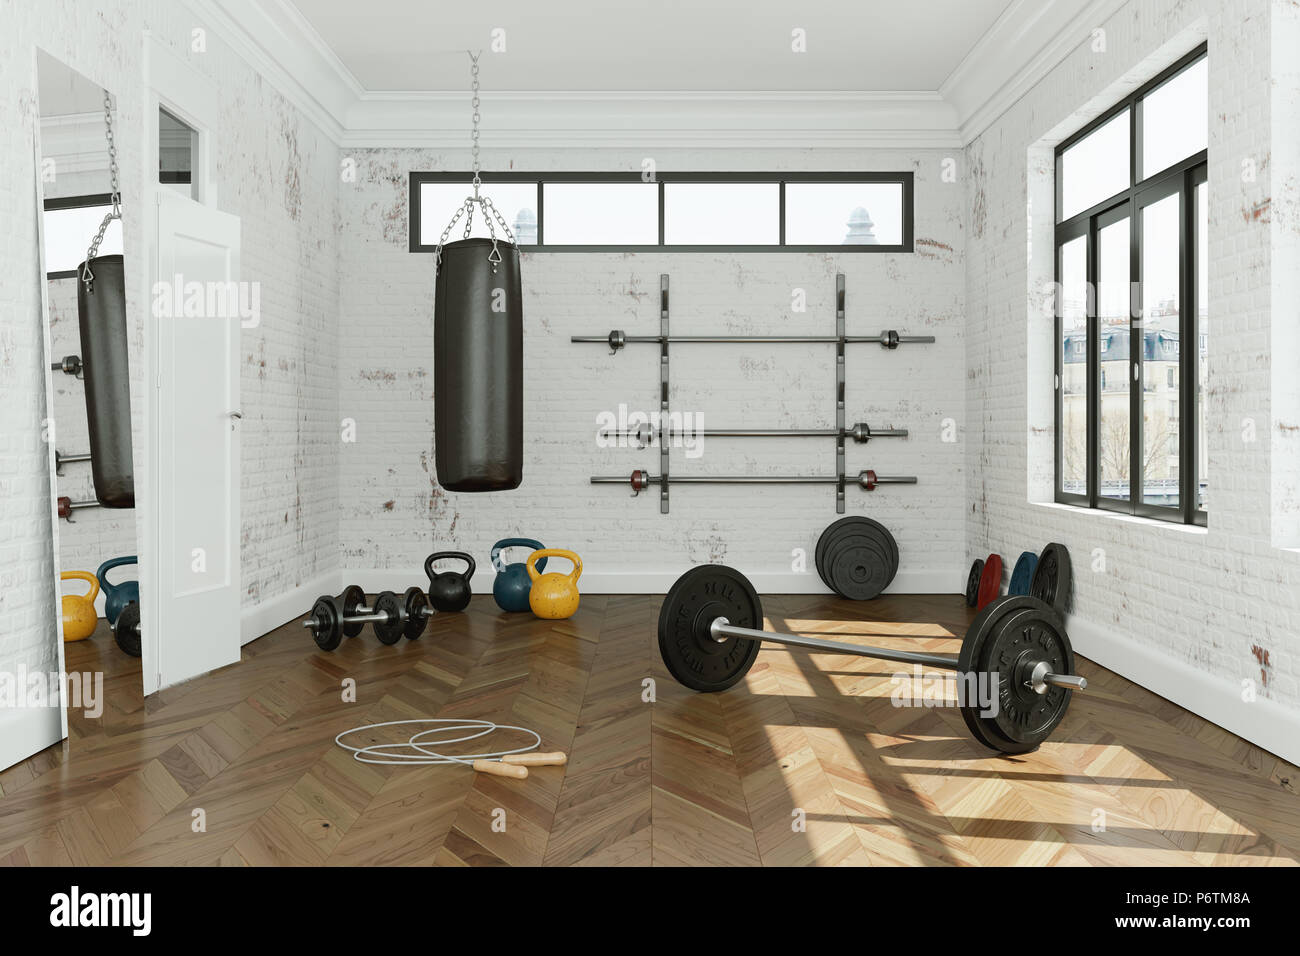 Workout room with different weight lifting equipment dumbbell